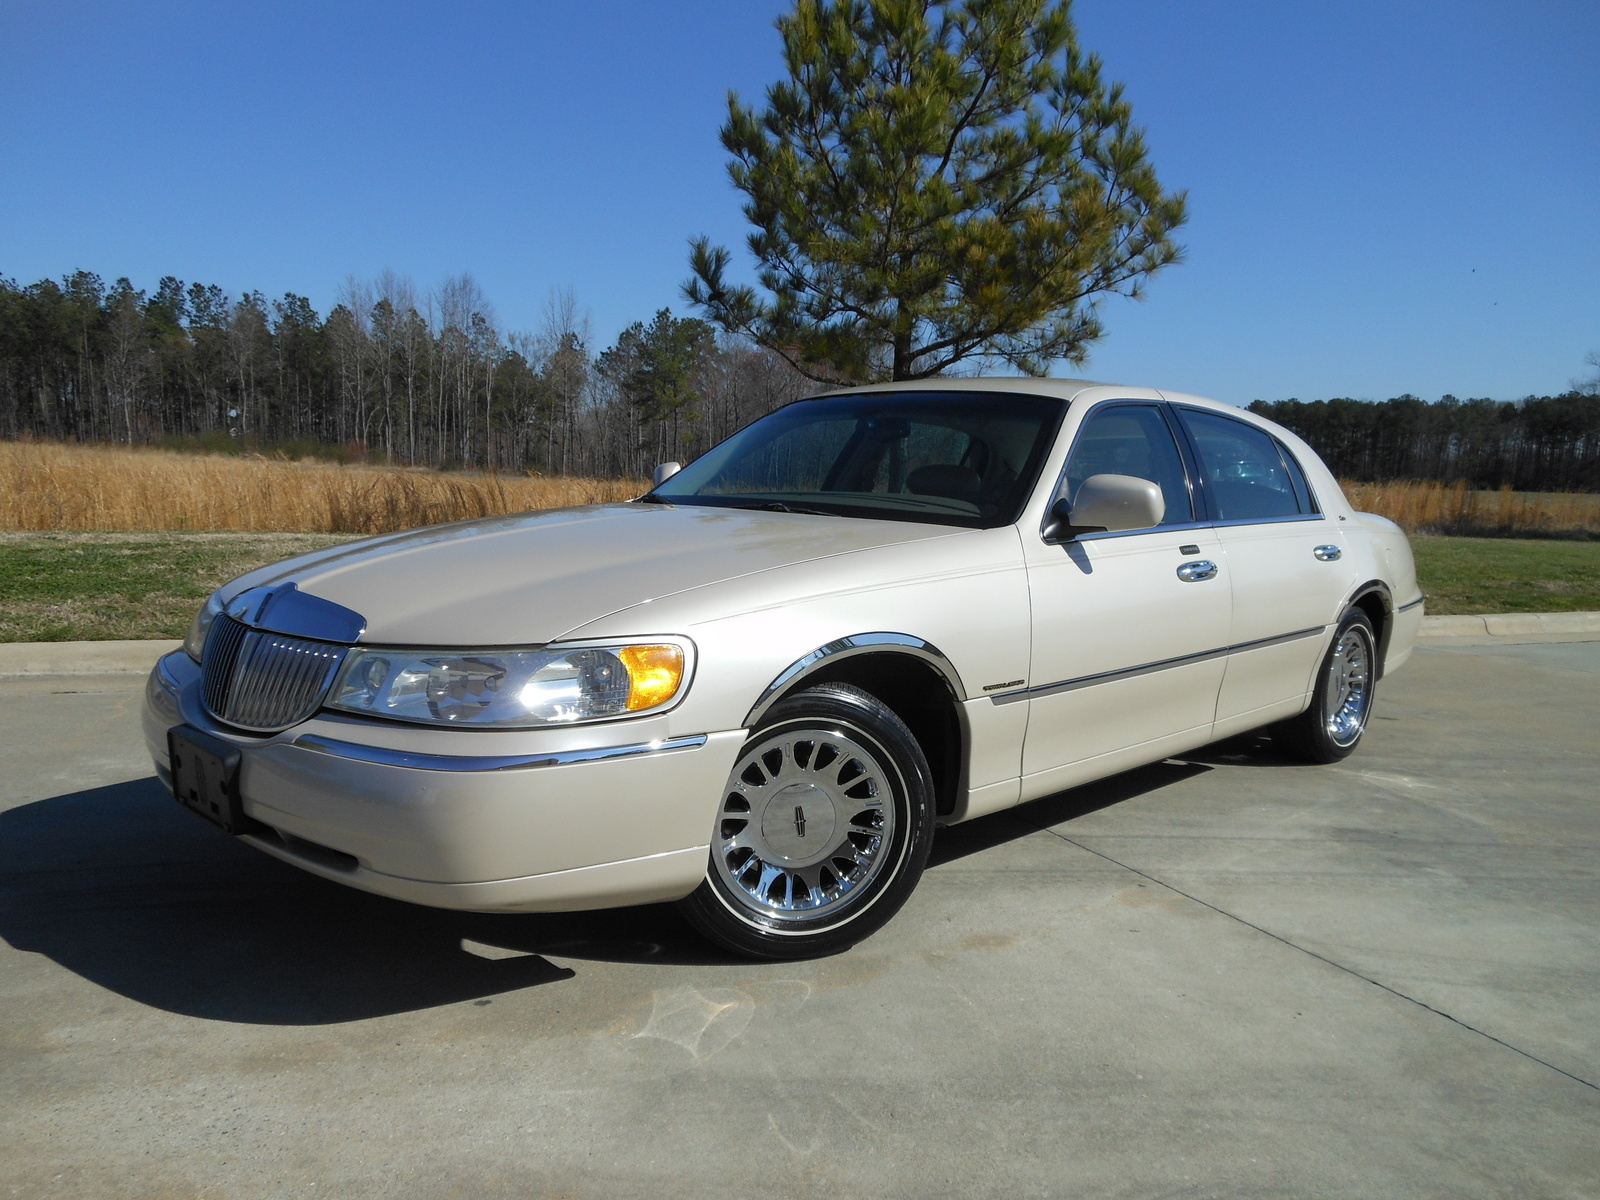 ford crown victoria questions will 2002 ford mustang lowering springs fit a 2002 ford crown vic cargurus will 2002 ford mustang lowering springs